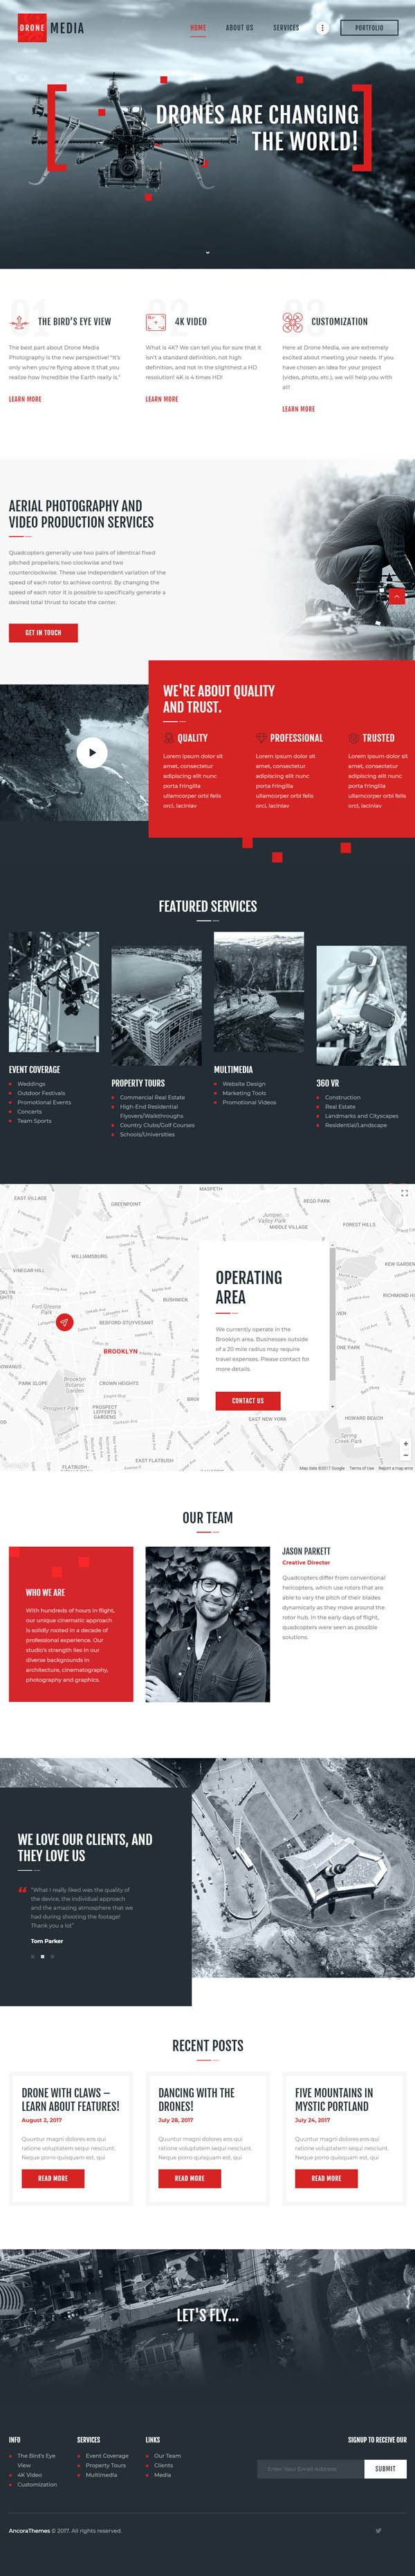 Drone Media | Aerial Photography & Videography #websitetemplate #websitedesign #designer #website #Corporate #responsive #HTML5 #css3 #Bootstrap #SEO